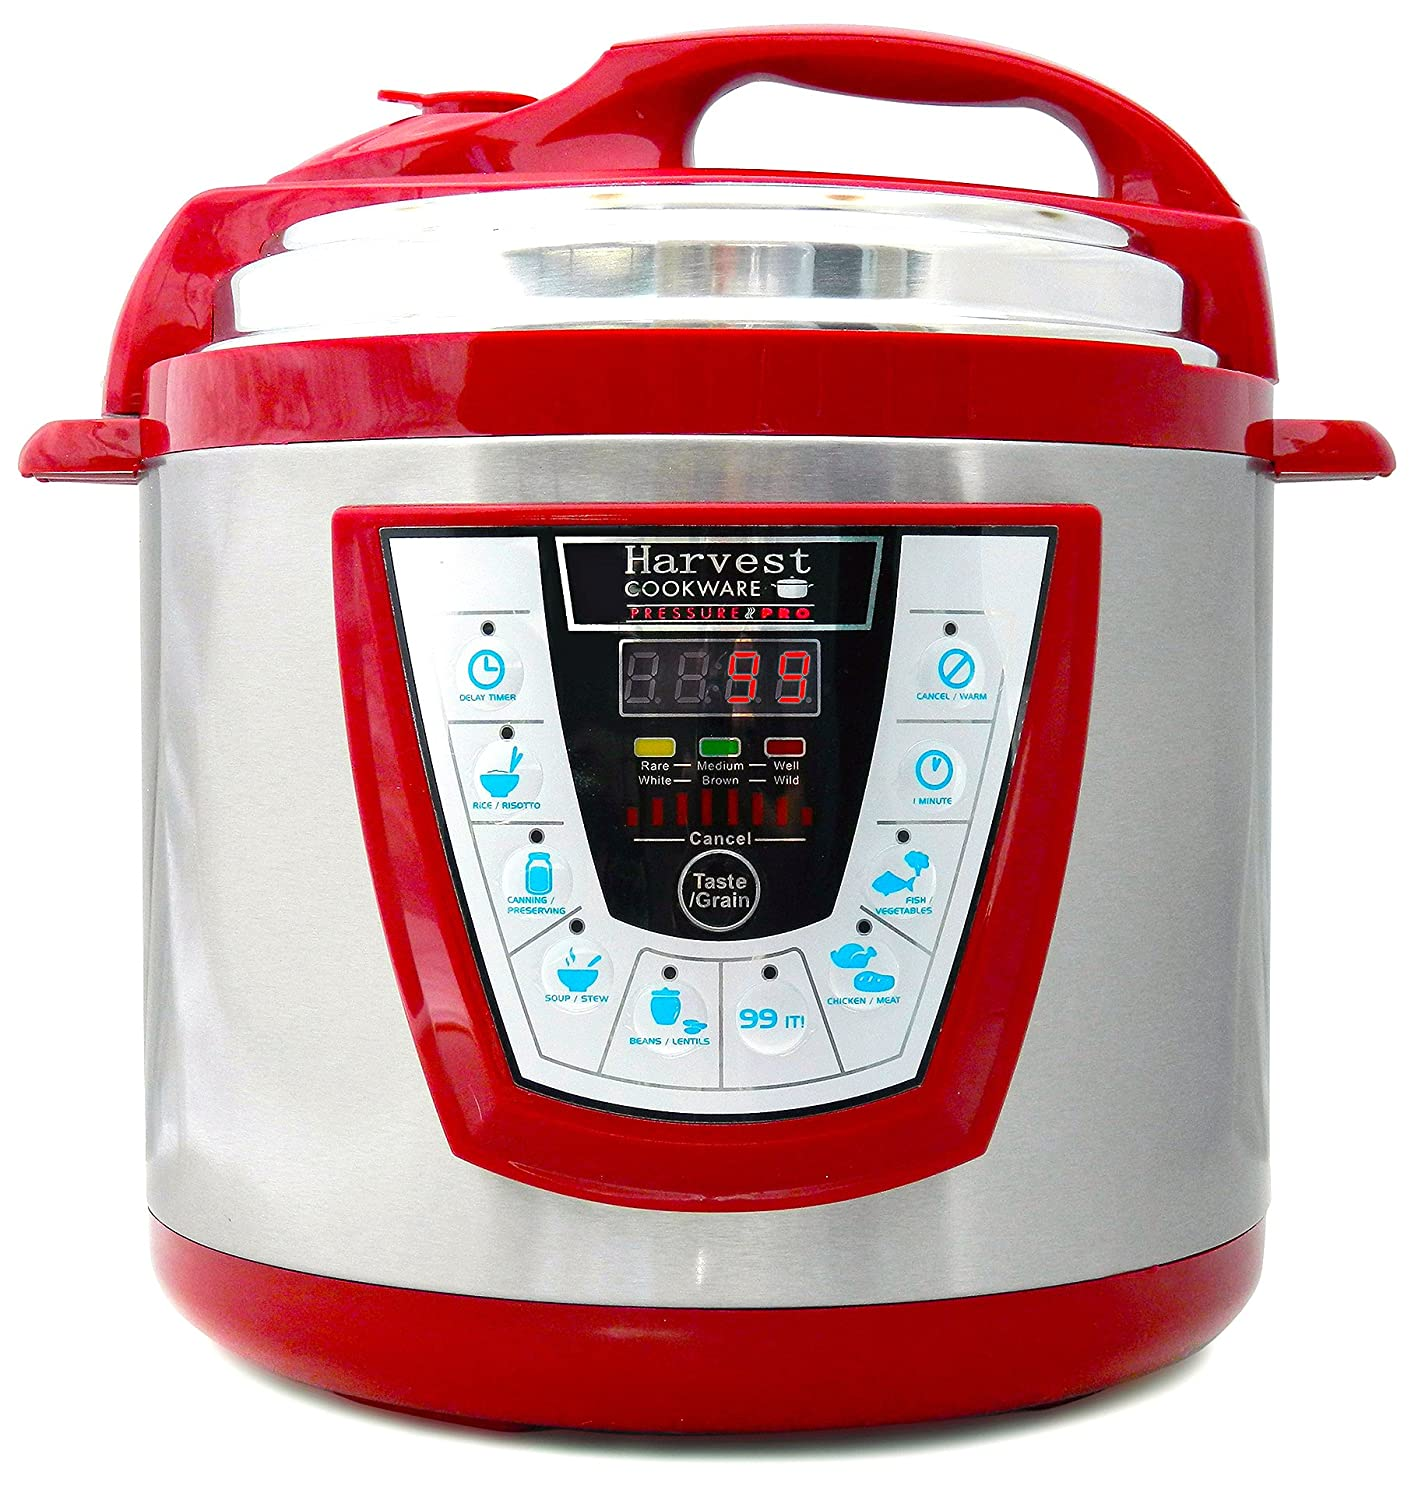 Harvest Cookware Pressure PRO Automatic 1 Touch Pressure Cooker 6-Quart, Red